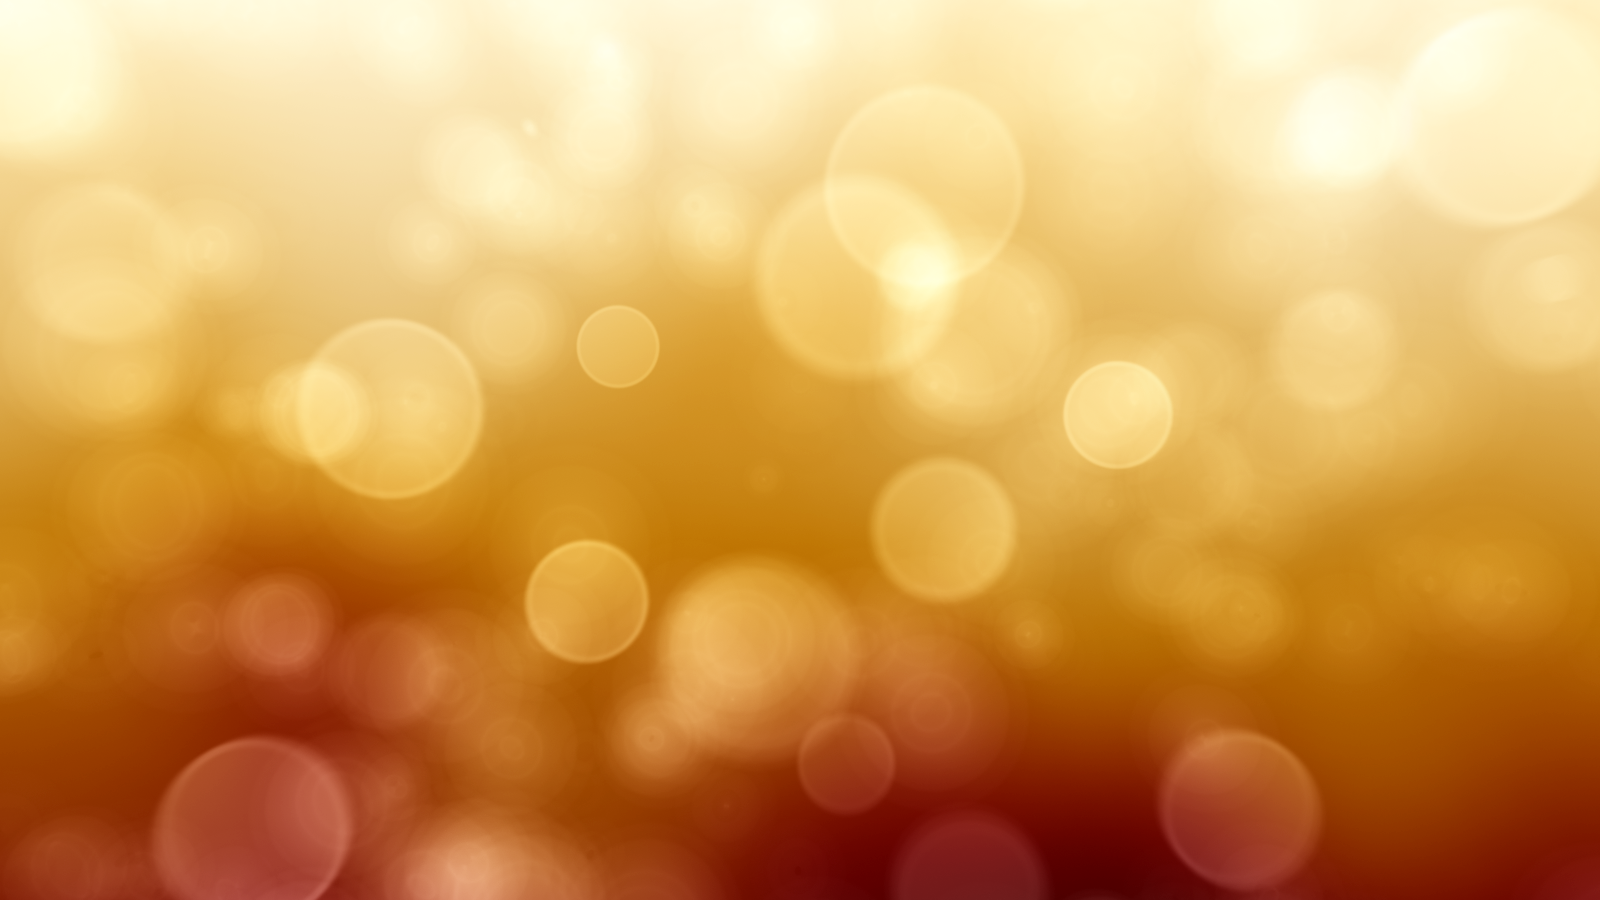 More Bokeh by cheesemoo0 on DeviantArt